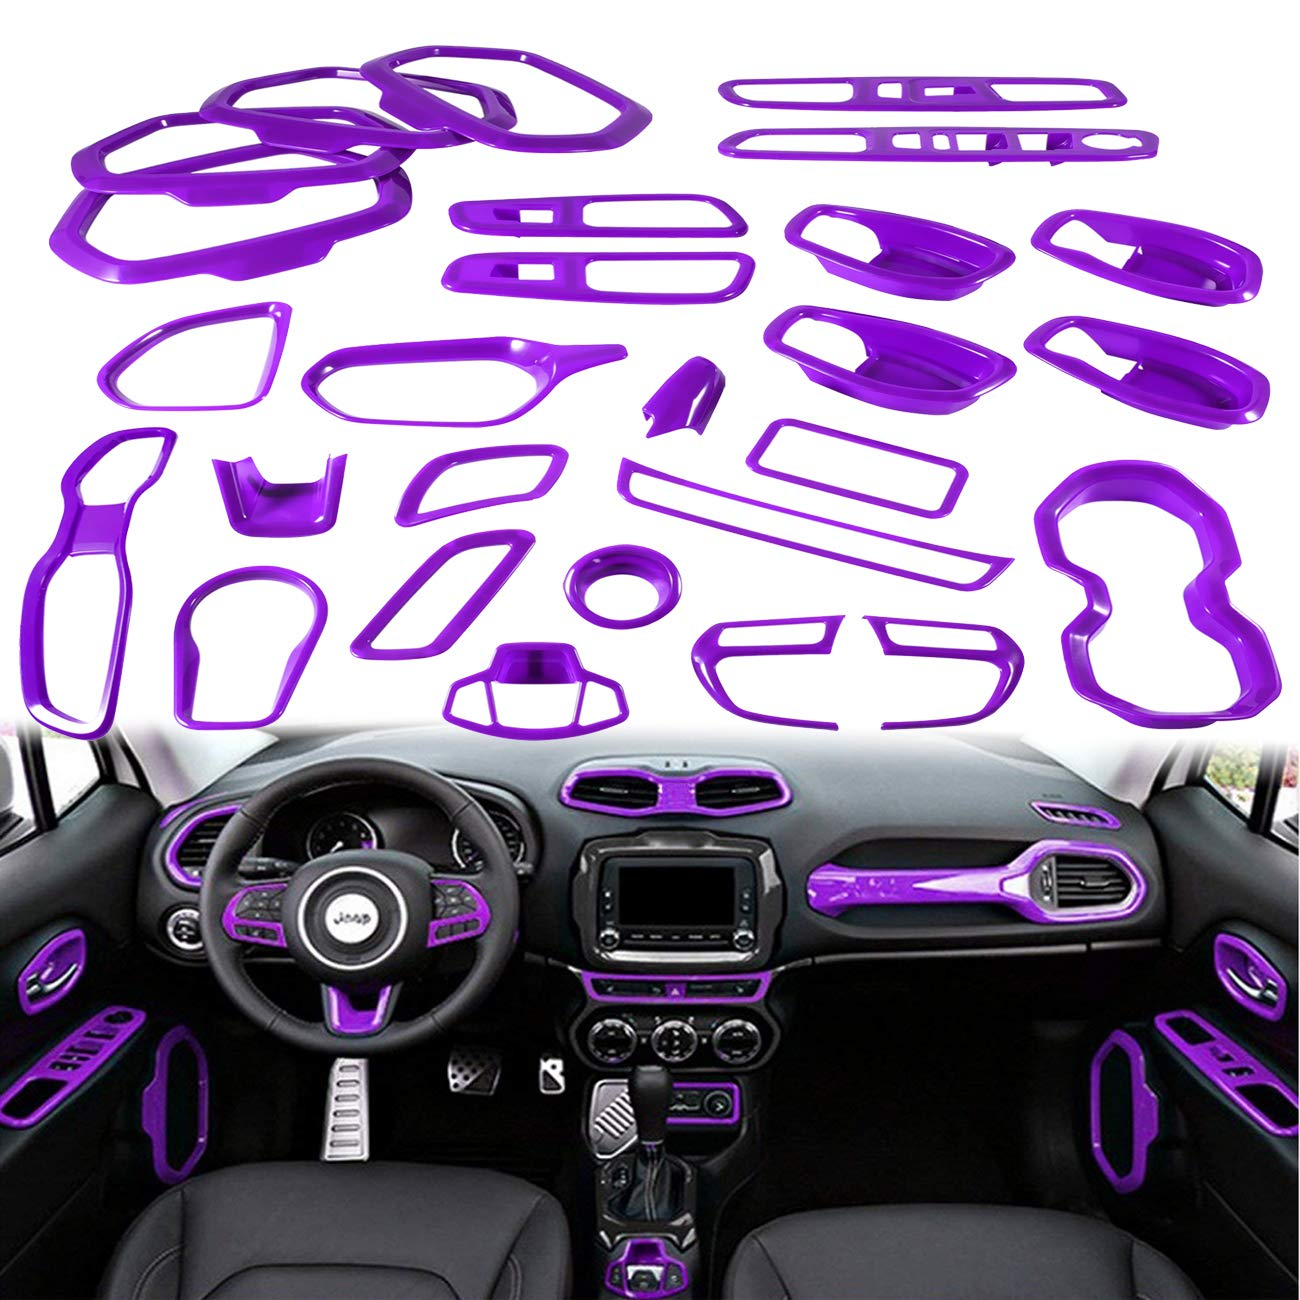 Yoursme Purple Car Interior Accessories Decoration Cover Trim Kit 31PCS Air  Conditioning Vent & Door Speaker & Water Cup Holder & Passenger Side Grab